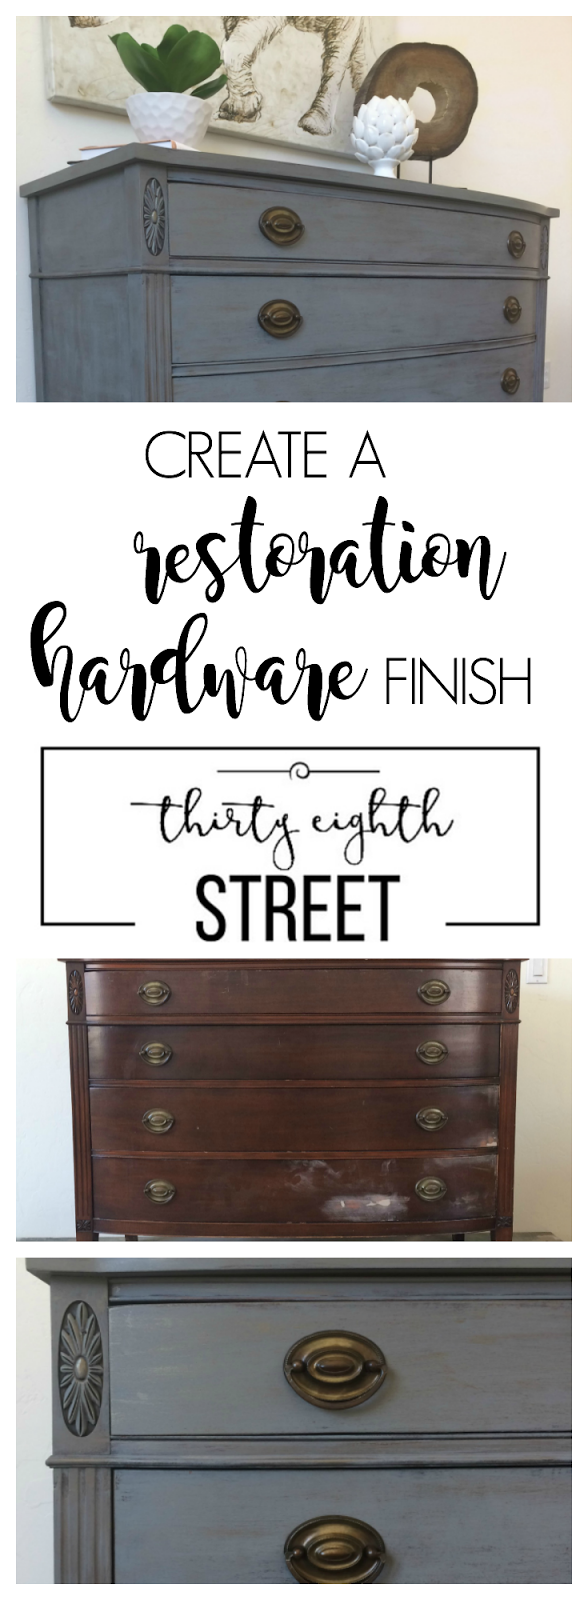 diy industrial furniture, restoration hardware knock off dresser, grey dresser makeover, diy restoration hardware tutorial, dry brush metallic cream on furniture, how to use metallic cream, how to get a layered look by dry brushing, dry brushing tutorial